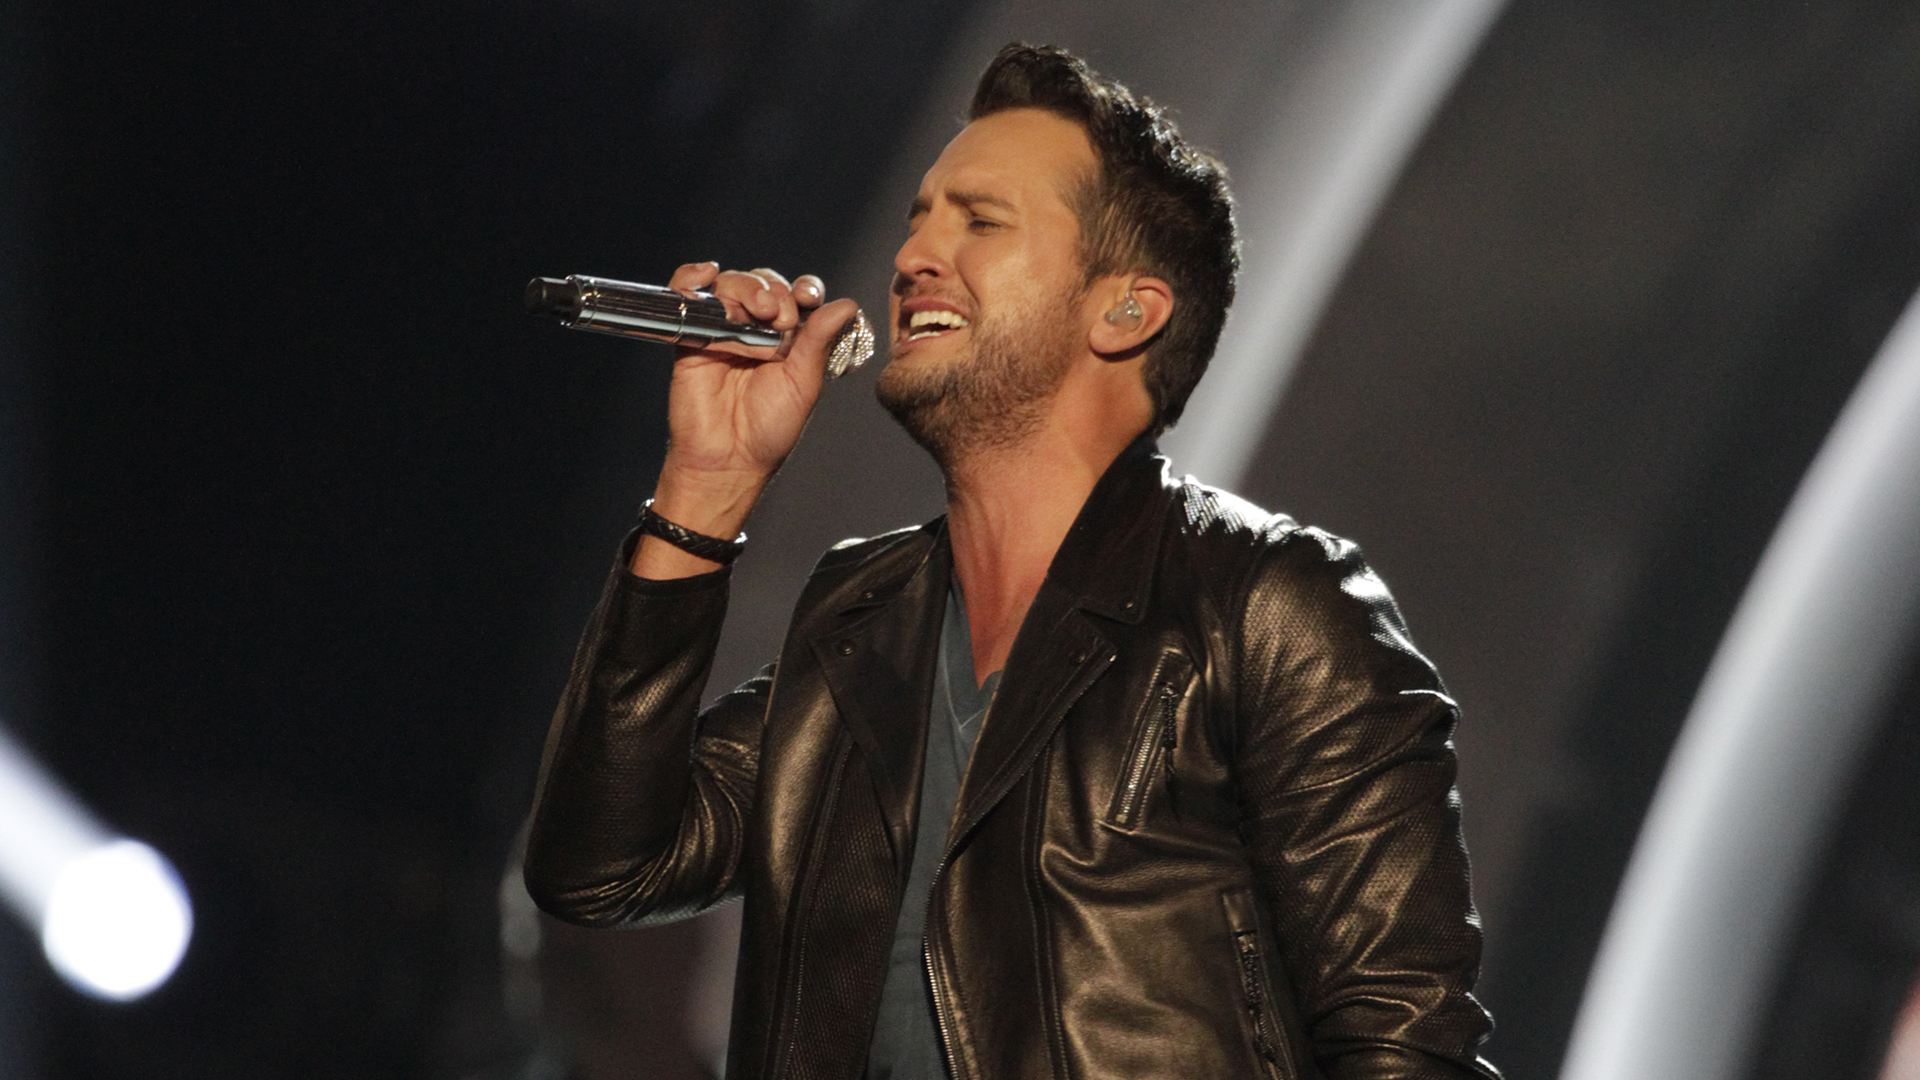 36. Luke Bryan performs